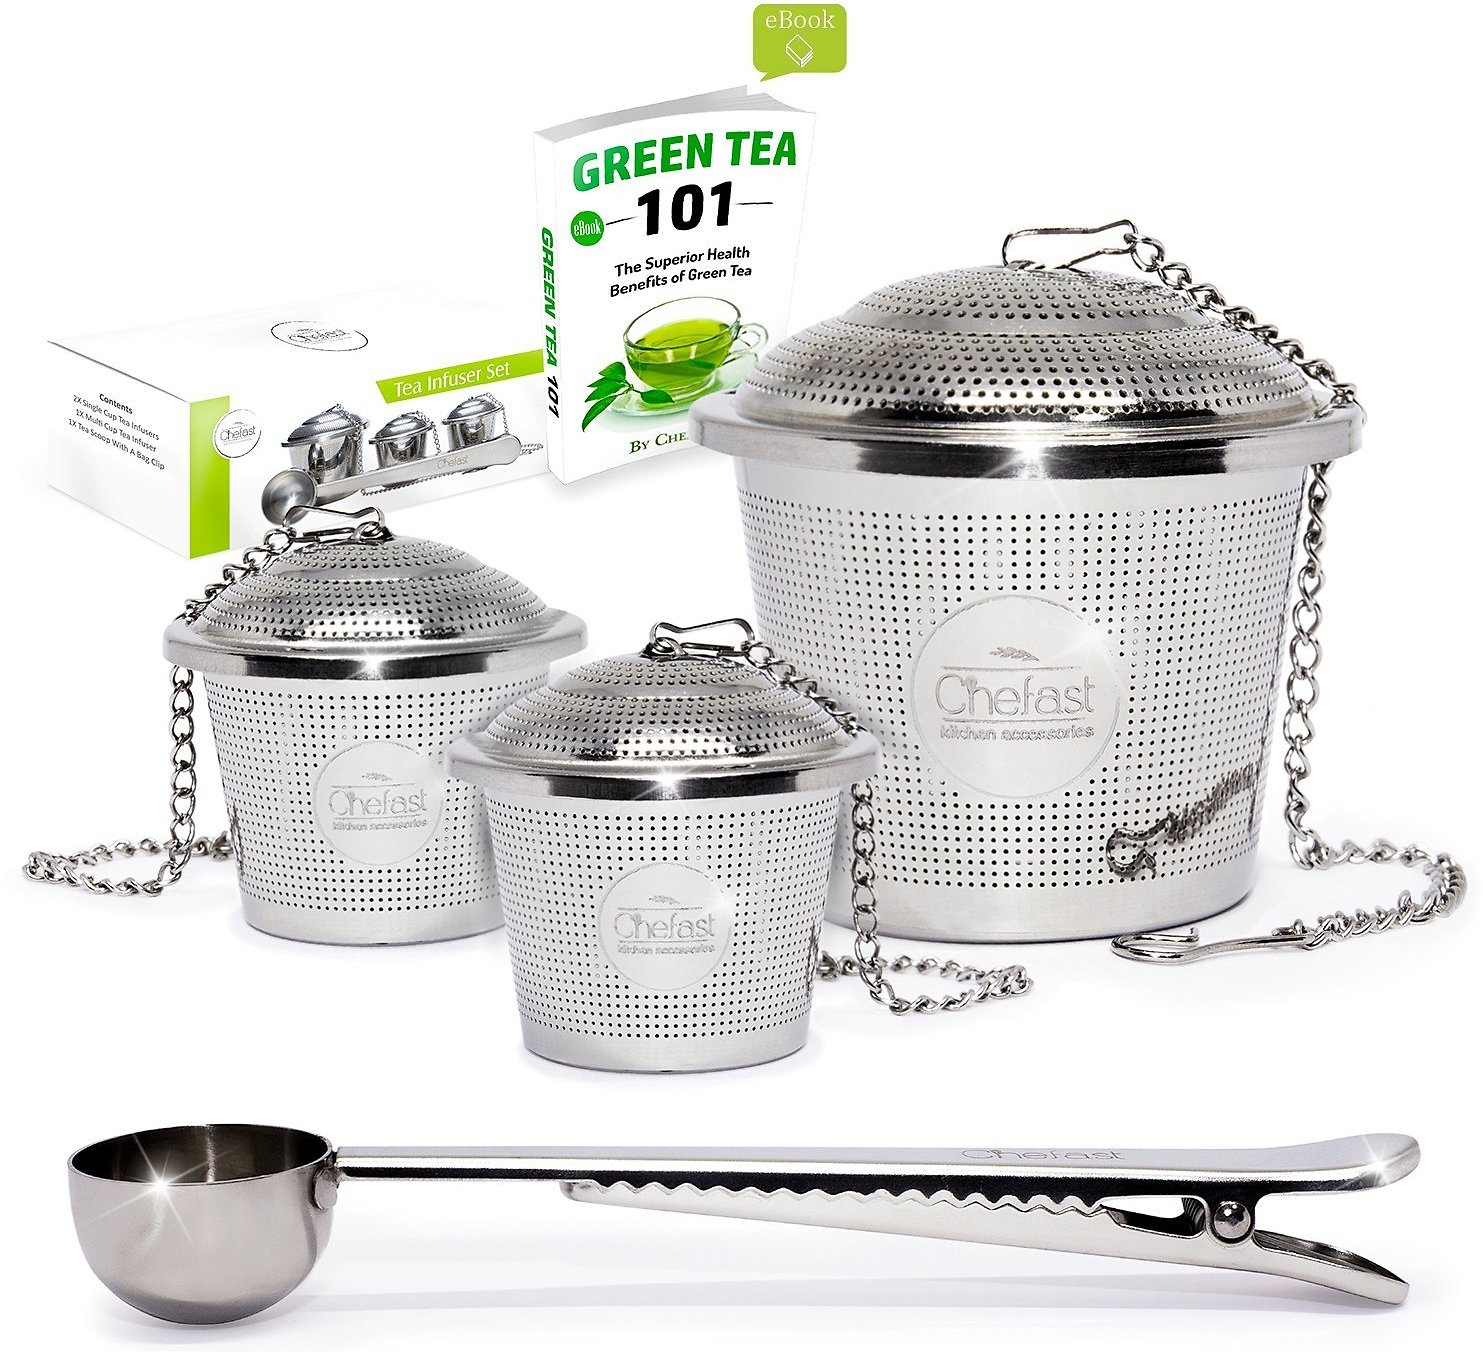 Tea Infuser Set By Chefast (2+1 Pack) - Premium Stainless Steel Strainers for a Superior Loose Leaf Tea Experience - Includes 2x Single Cup Infusers, 1x Multi Cup Infuser, Scoop with Bag Clip & EBook